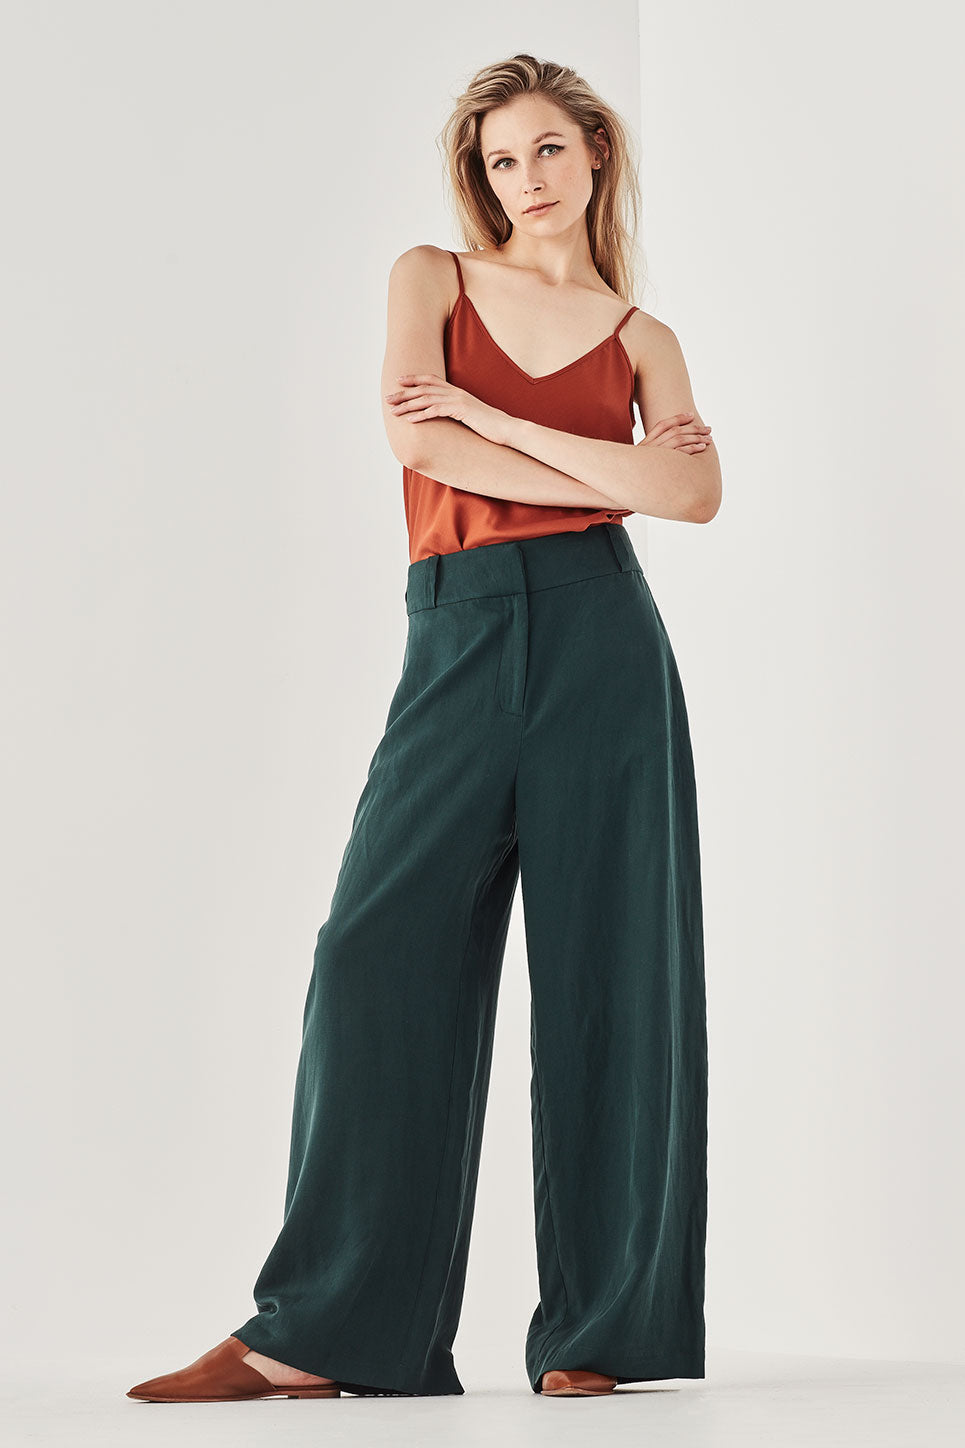 The Kingswood Pant in Pine